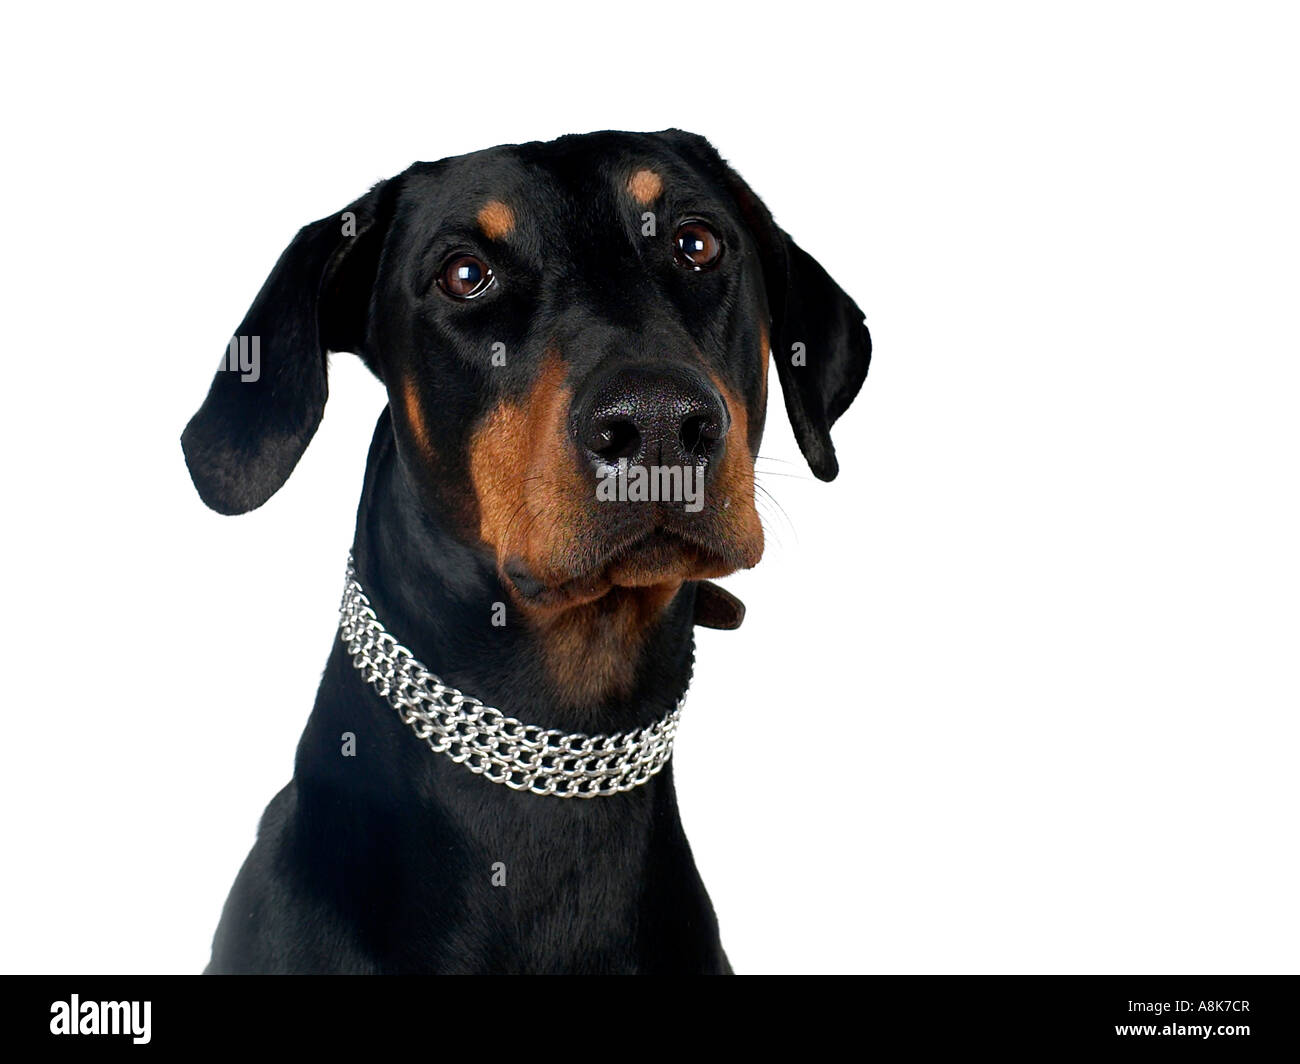 A sad looking doberman. - Stock Image